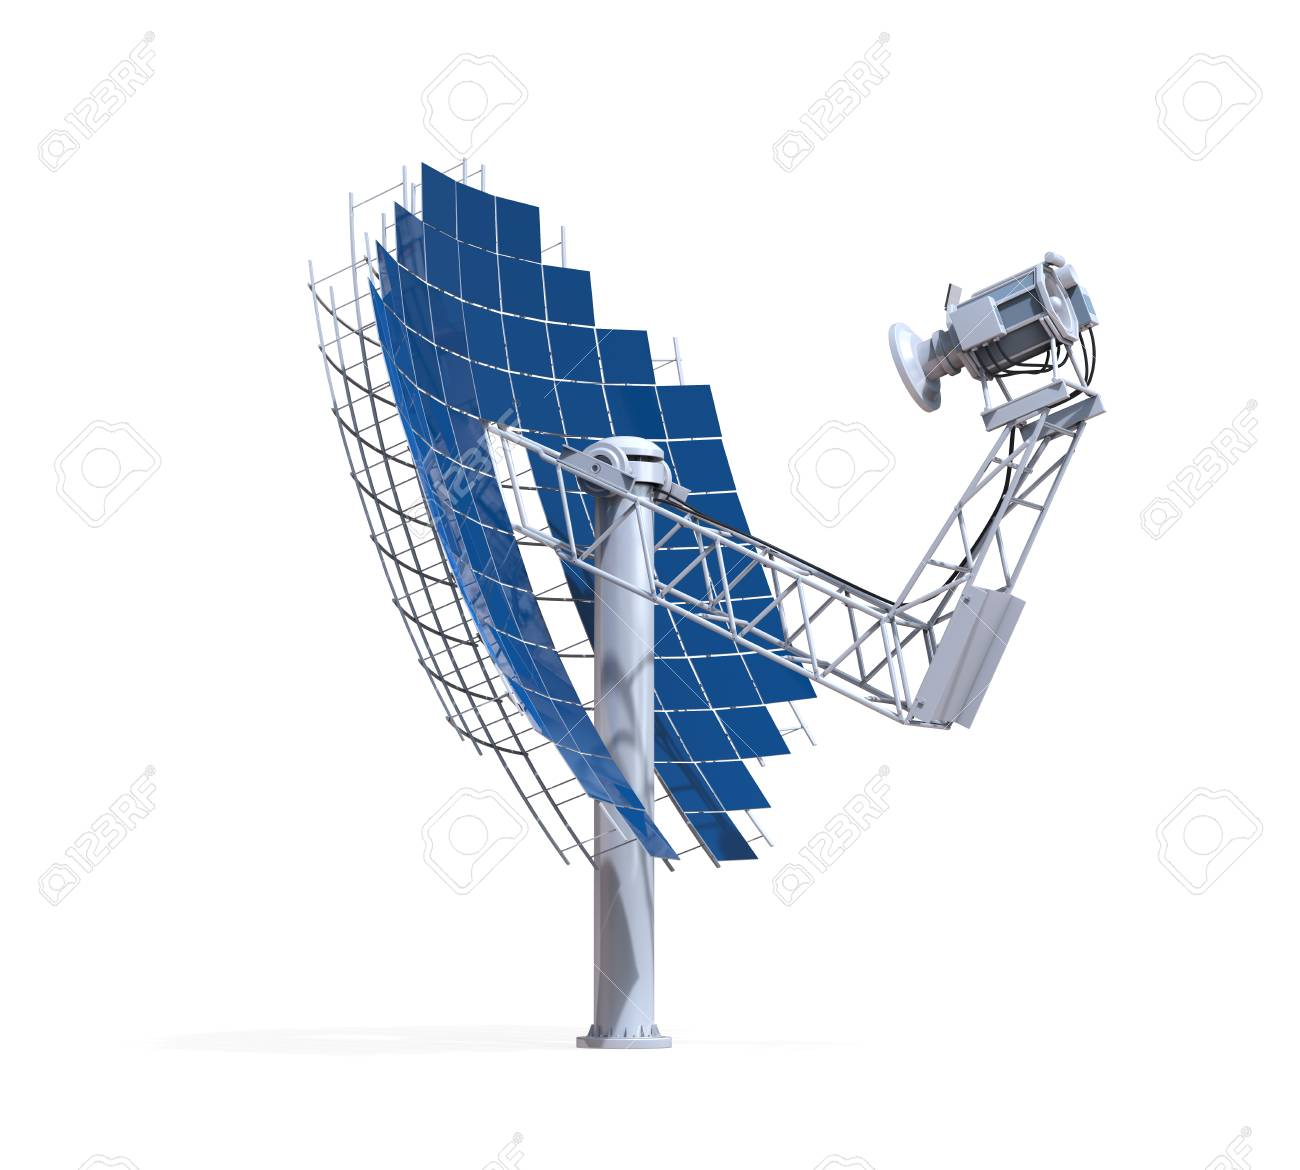 Solar Dish Engine Stock Photo Picture And Royalty Free Image Diagram 28829549